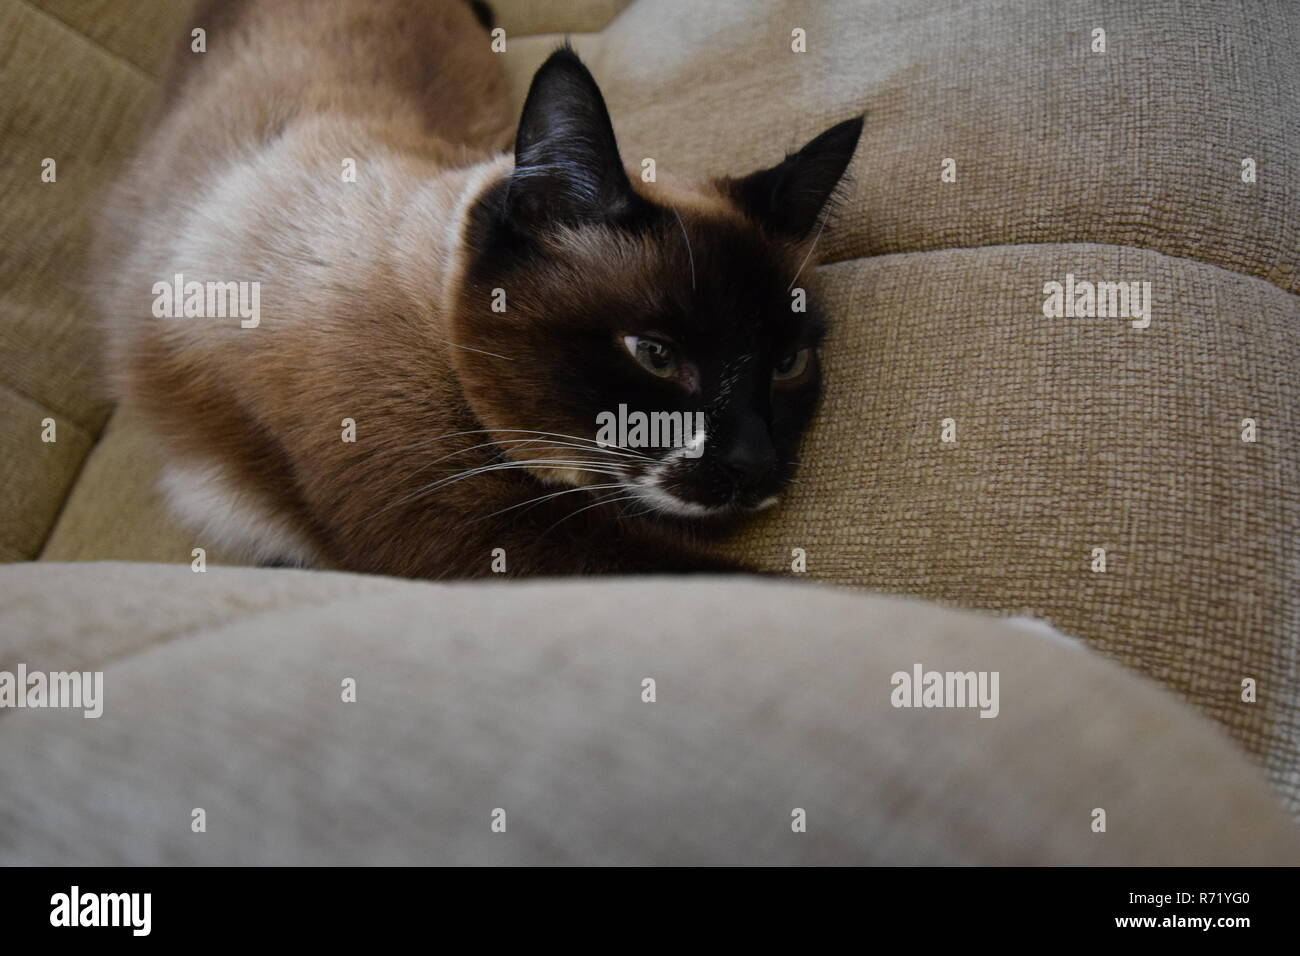 Sleepy Cat - Stock Image